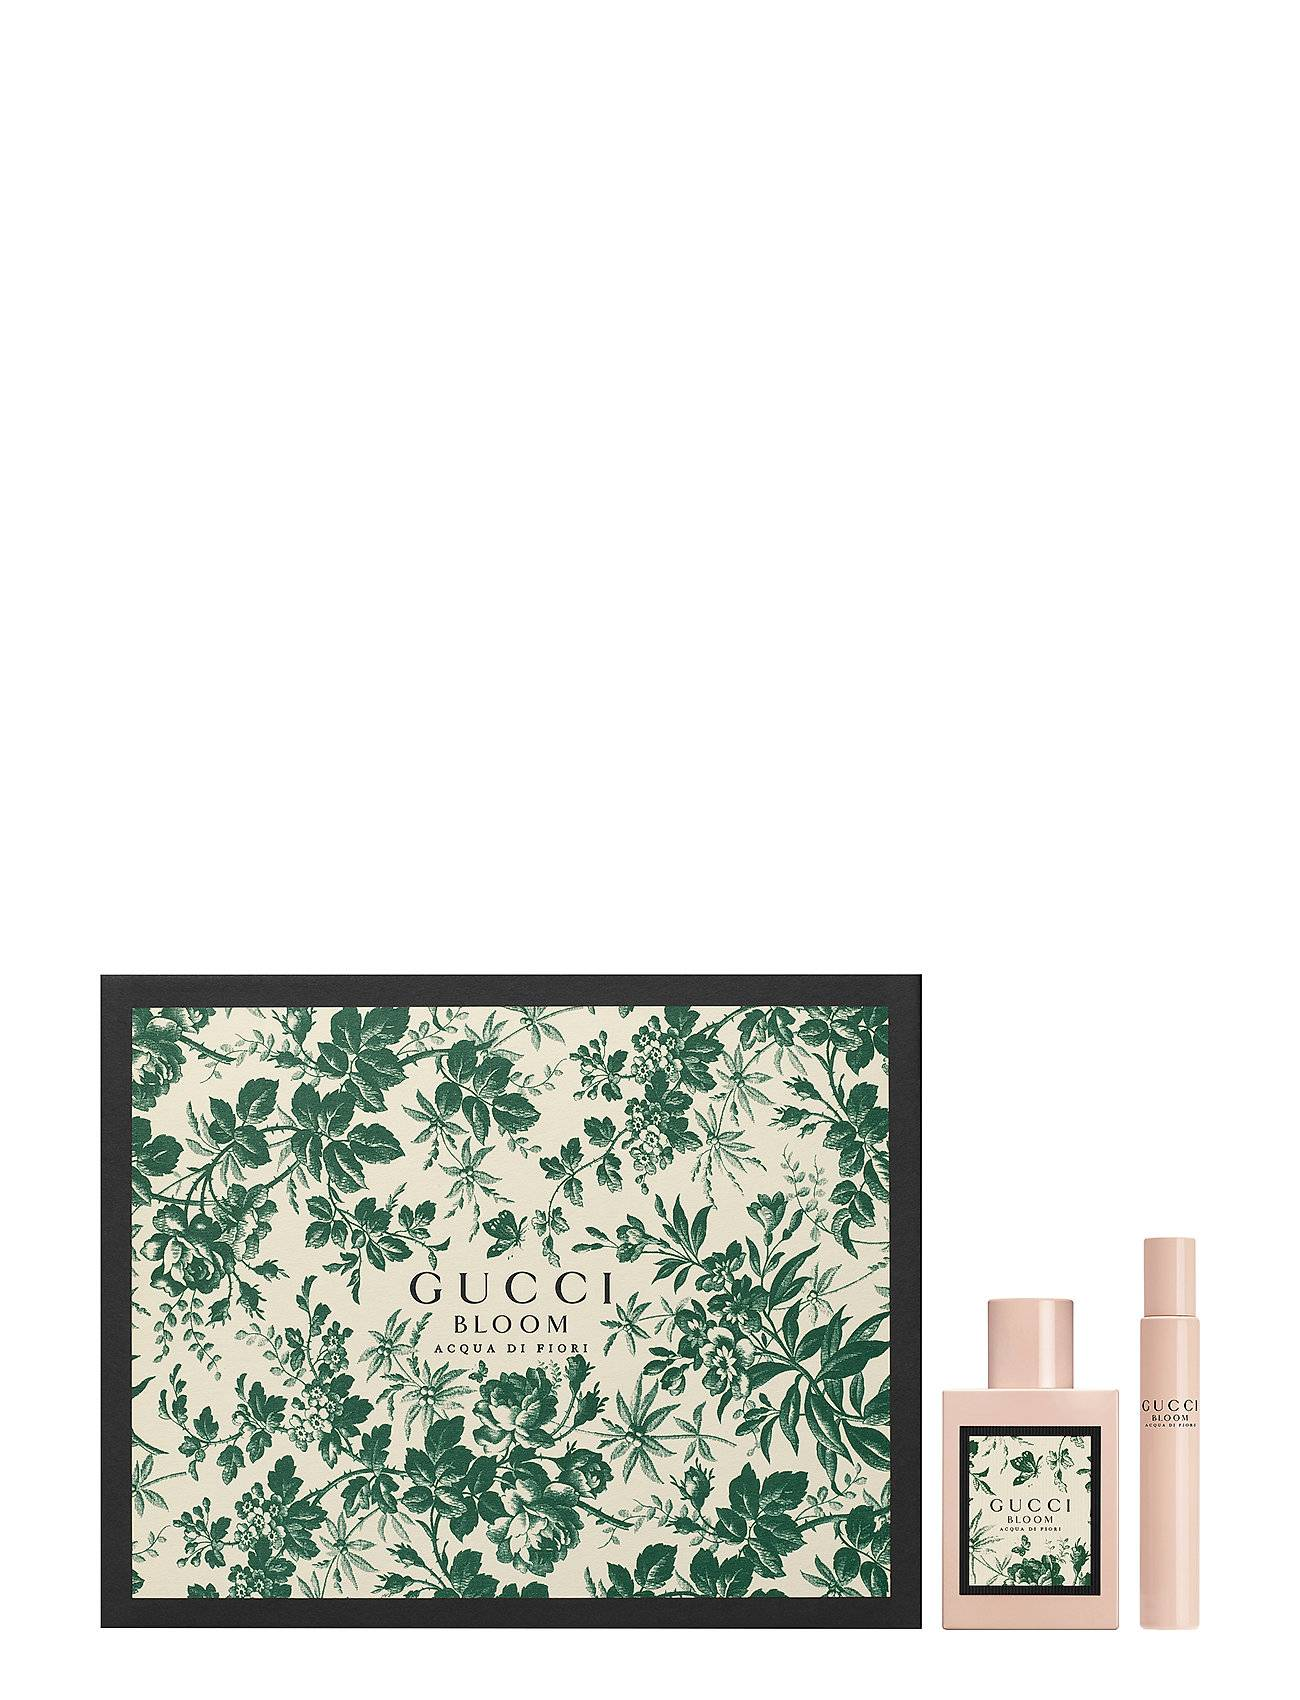 Gucci Bloom Acqua Di Fiori Edt 50ml/Roll Ball 7.4ml